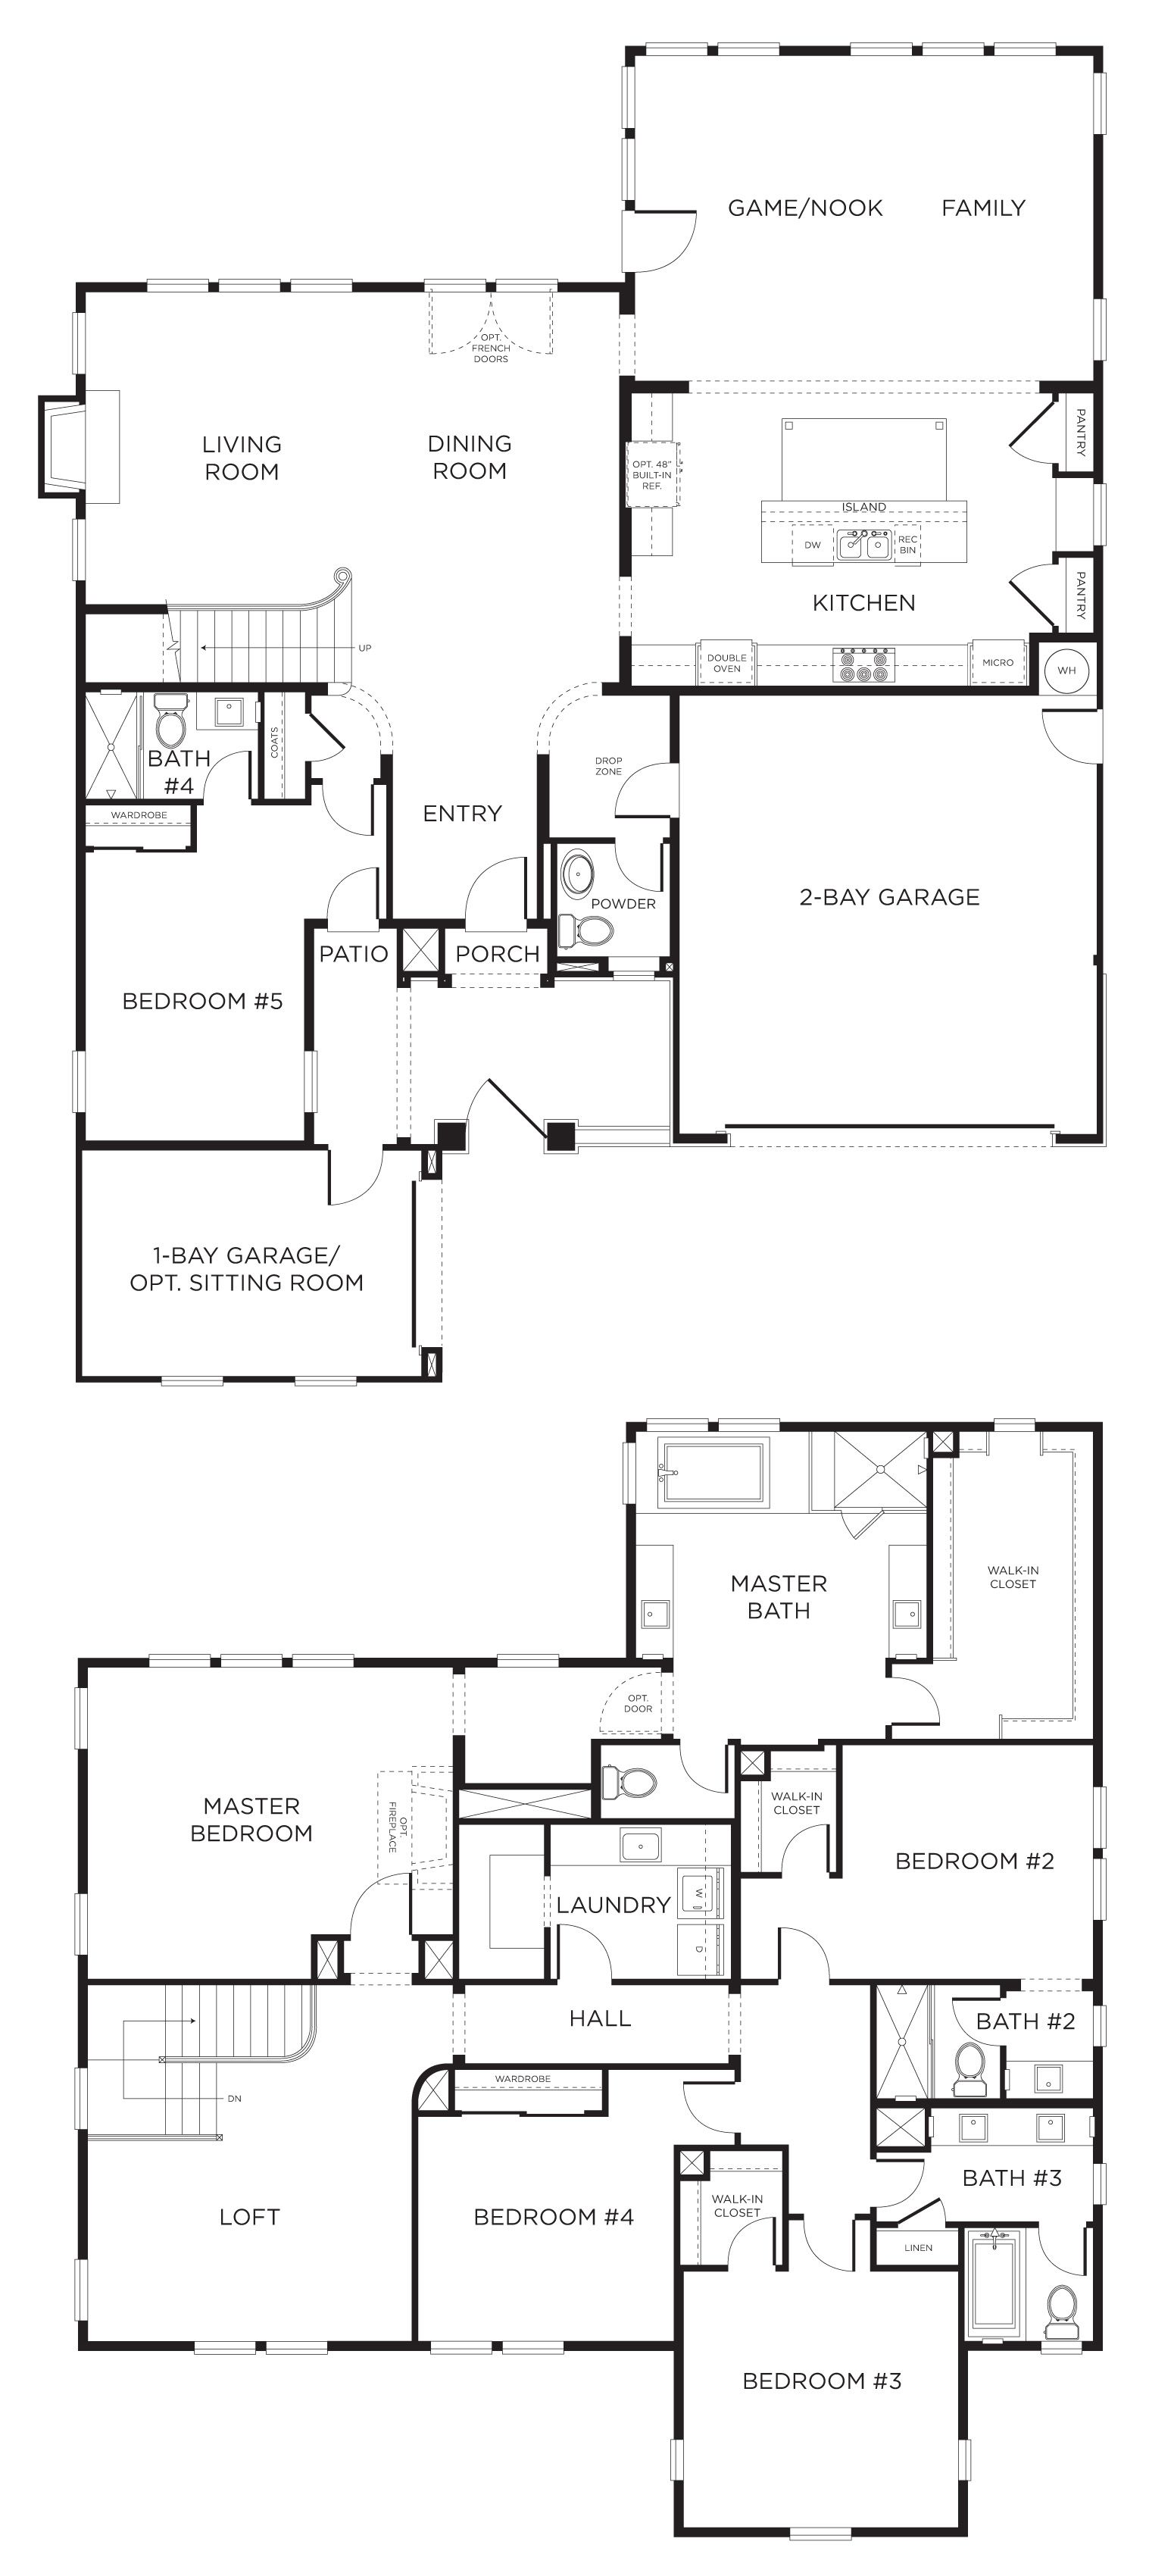 5 bedroom house plan i 39 d move the 5th room upstairs and 5 bedroom floor plans